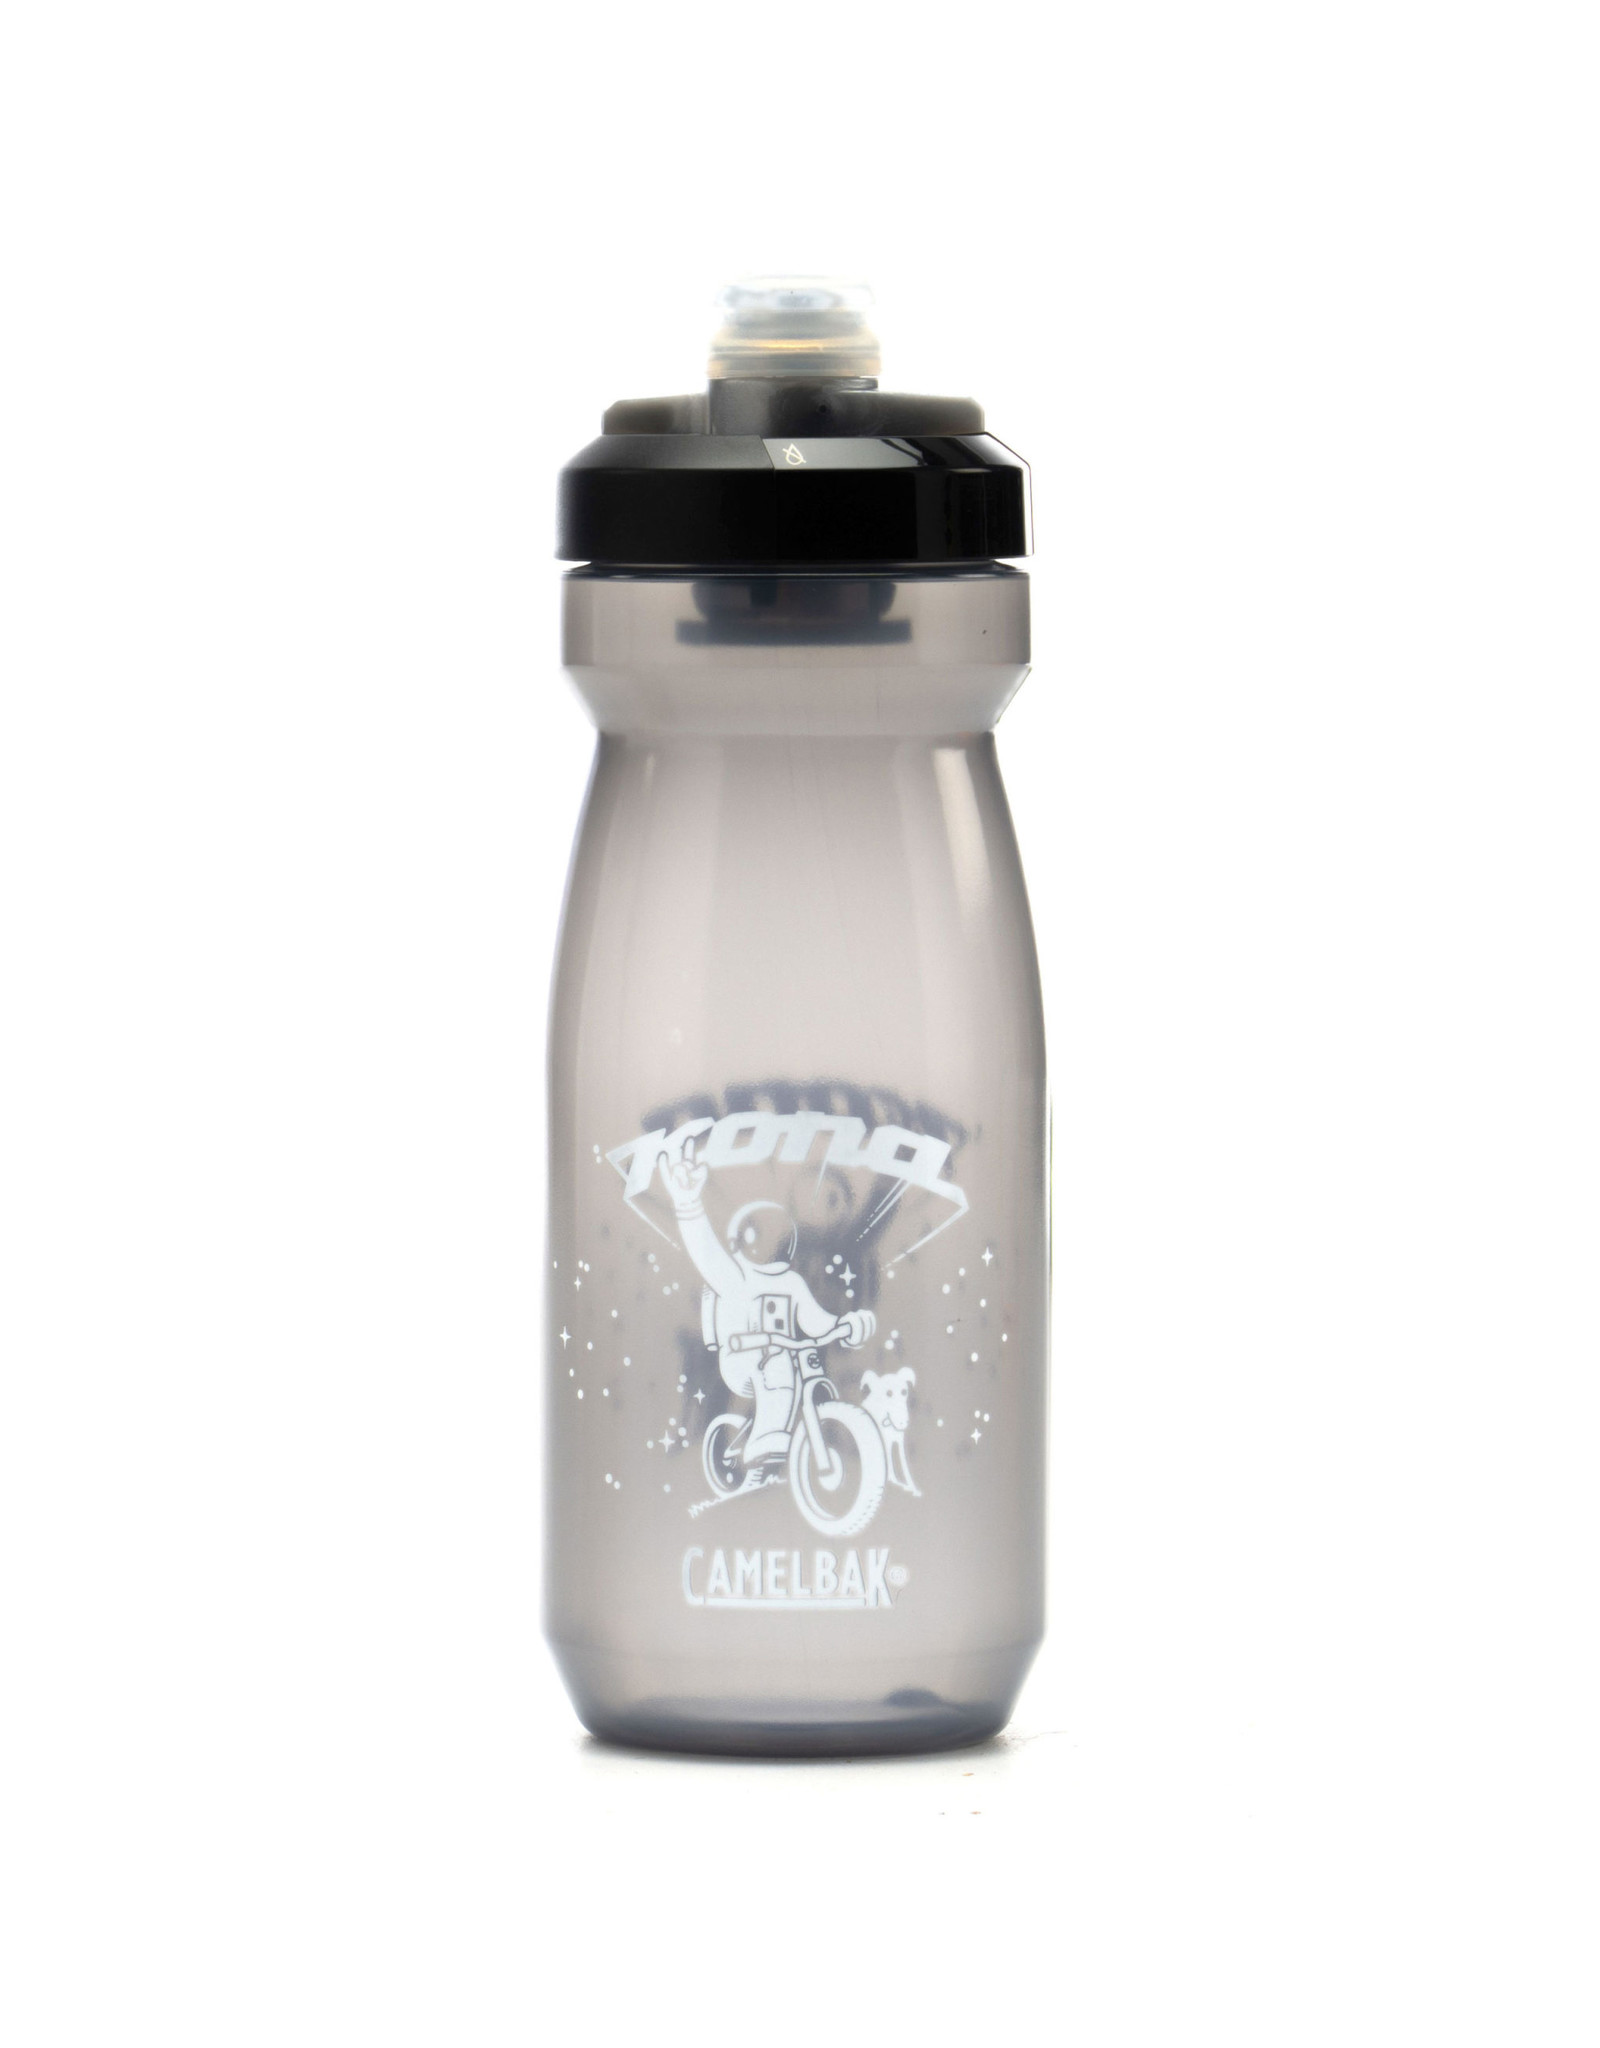 O037000: Camelbak astronaut water bottle 21 OZ GRAY/WHITE